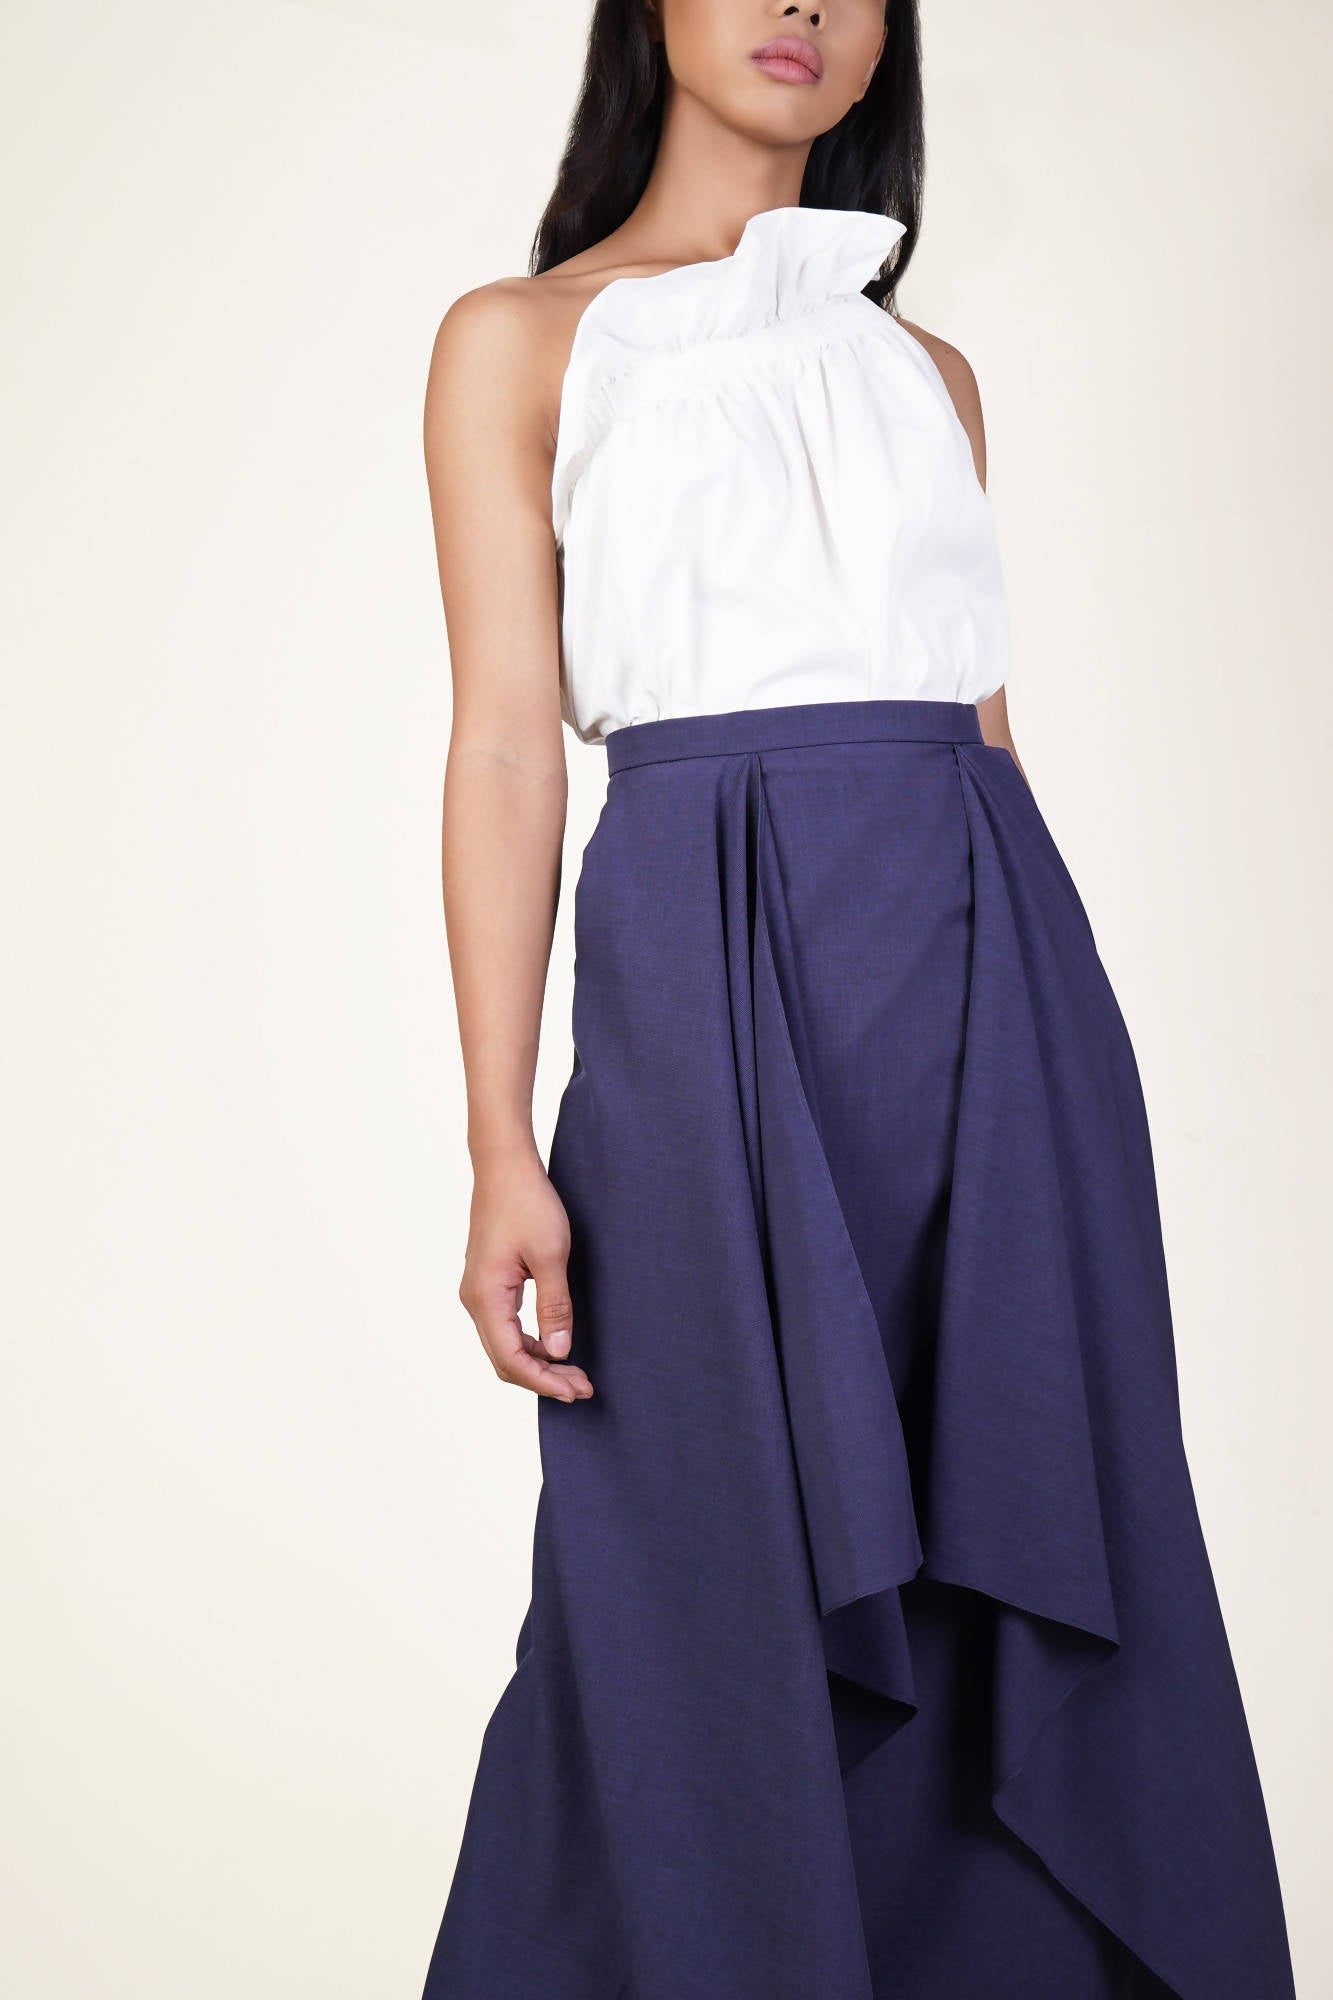 Kite Skirt in Navy